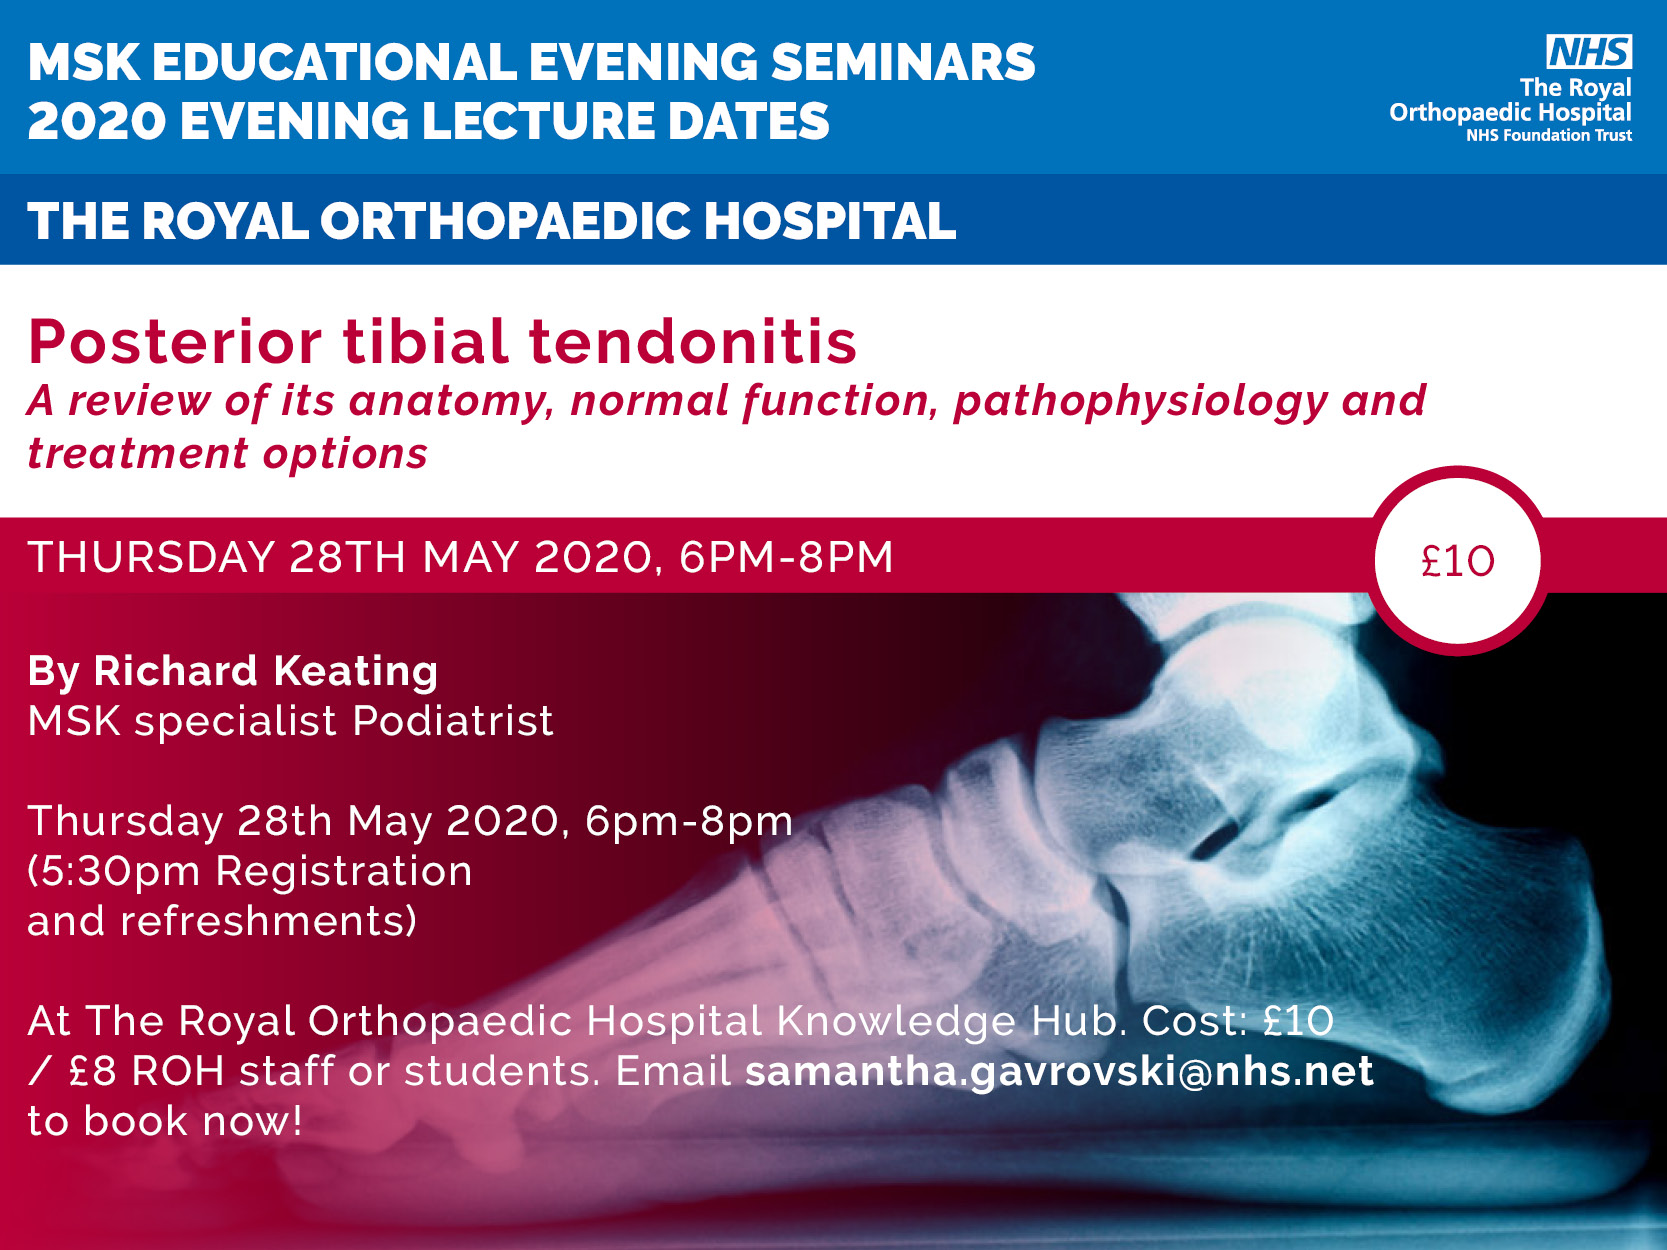 MSK evening lectures